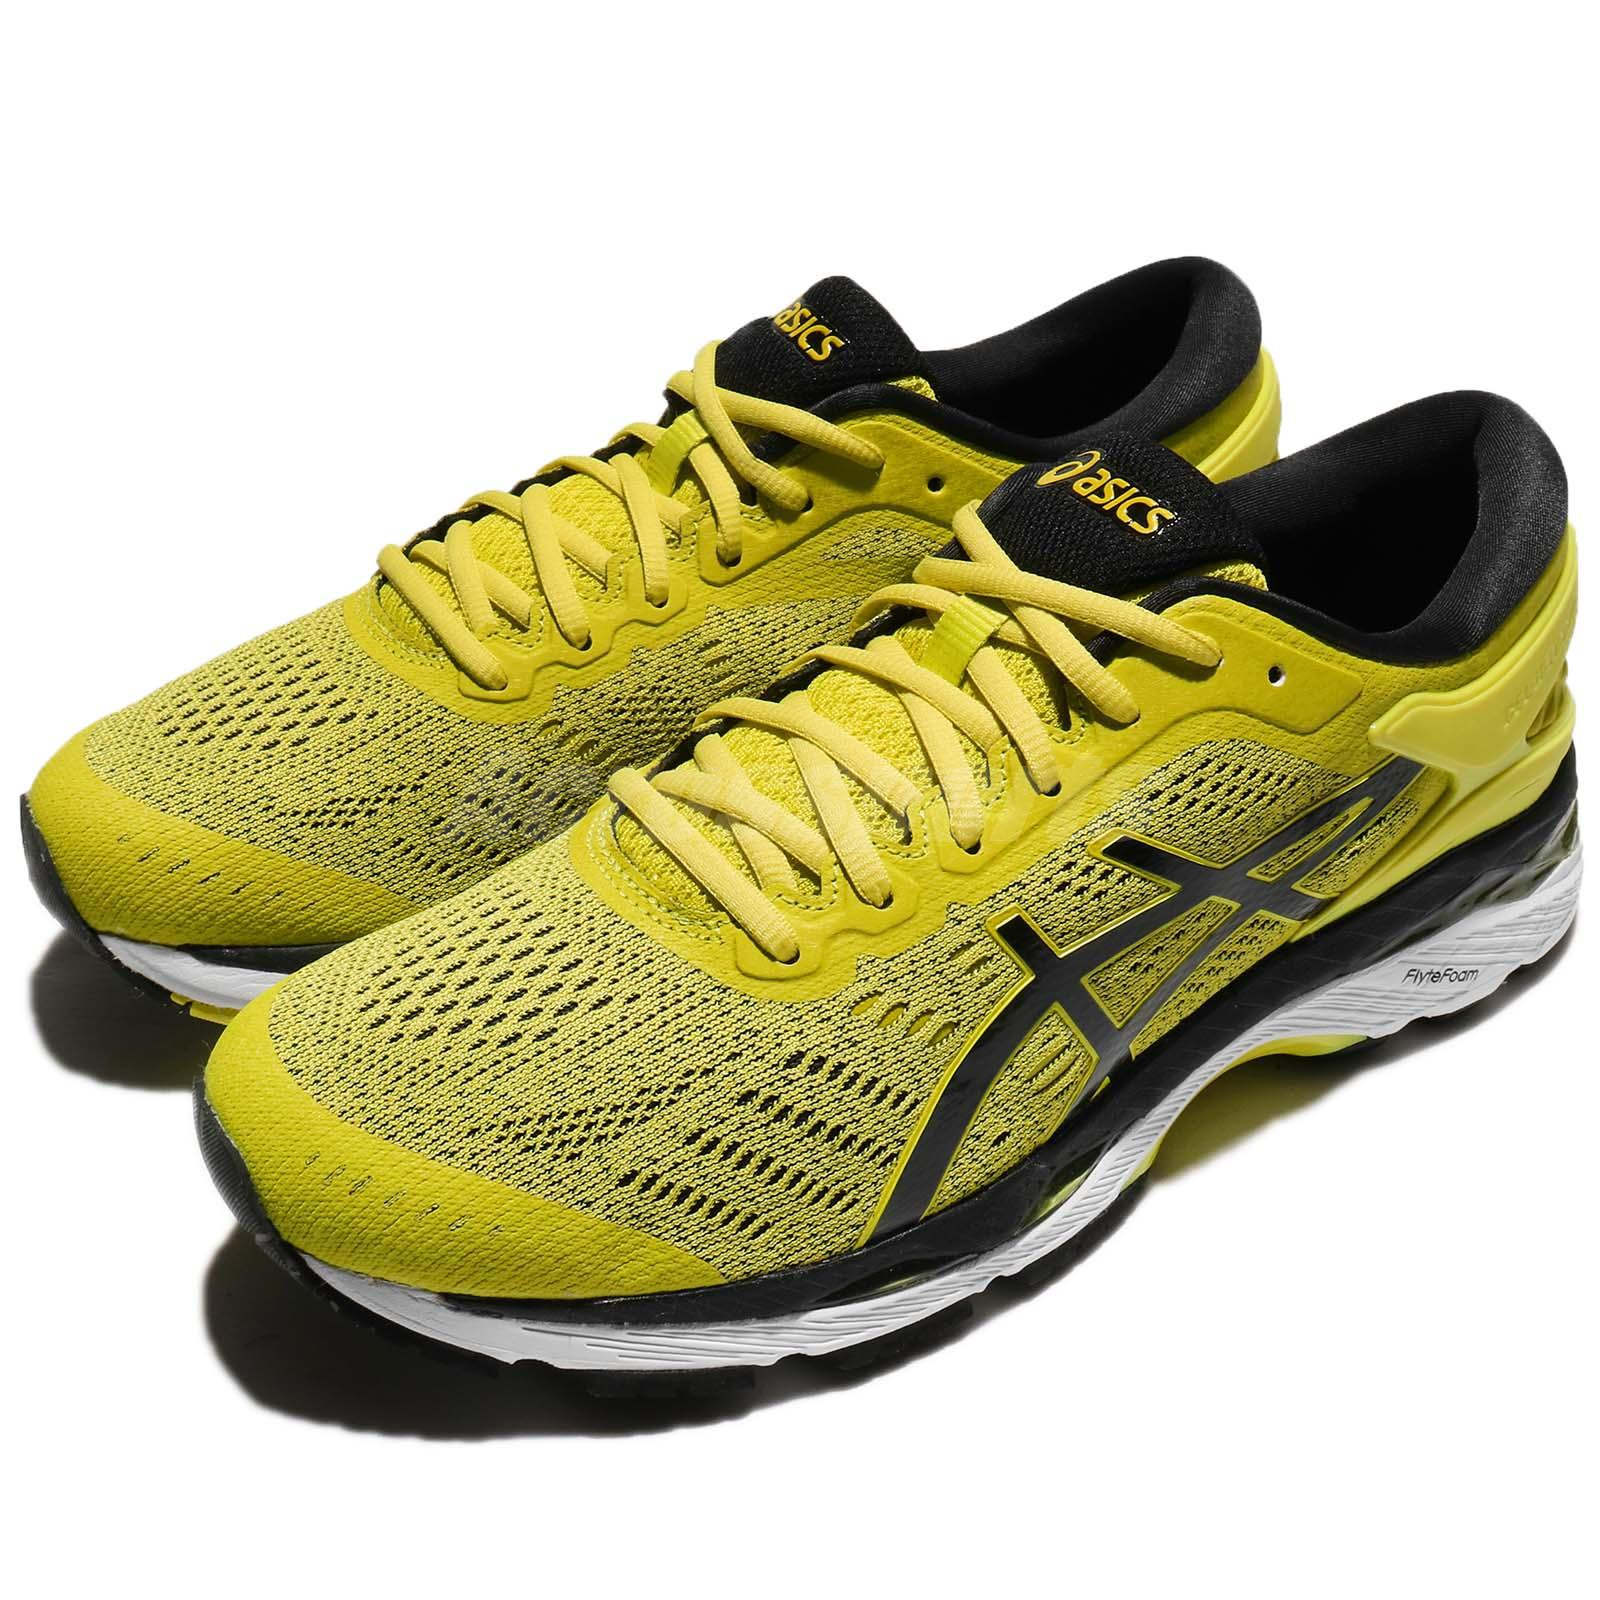 New Asics Gel-Kenun Mx Running Shoes Mens Burgundy/Grey Online |Maroon And Yellow Asics Shoes